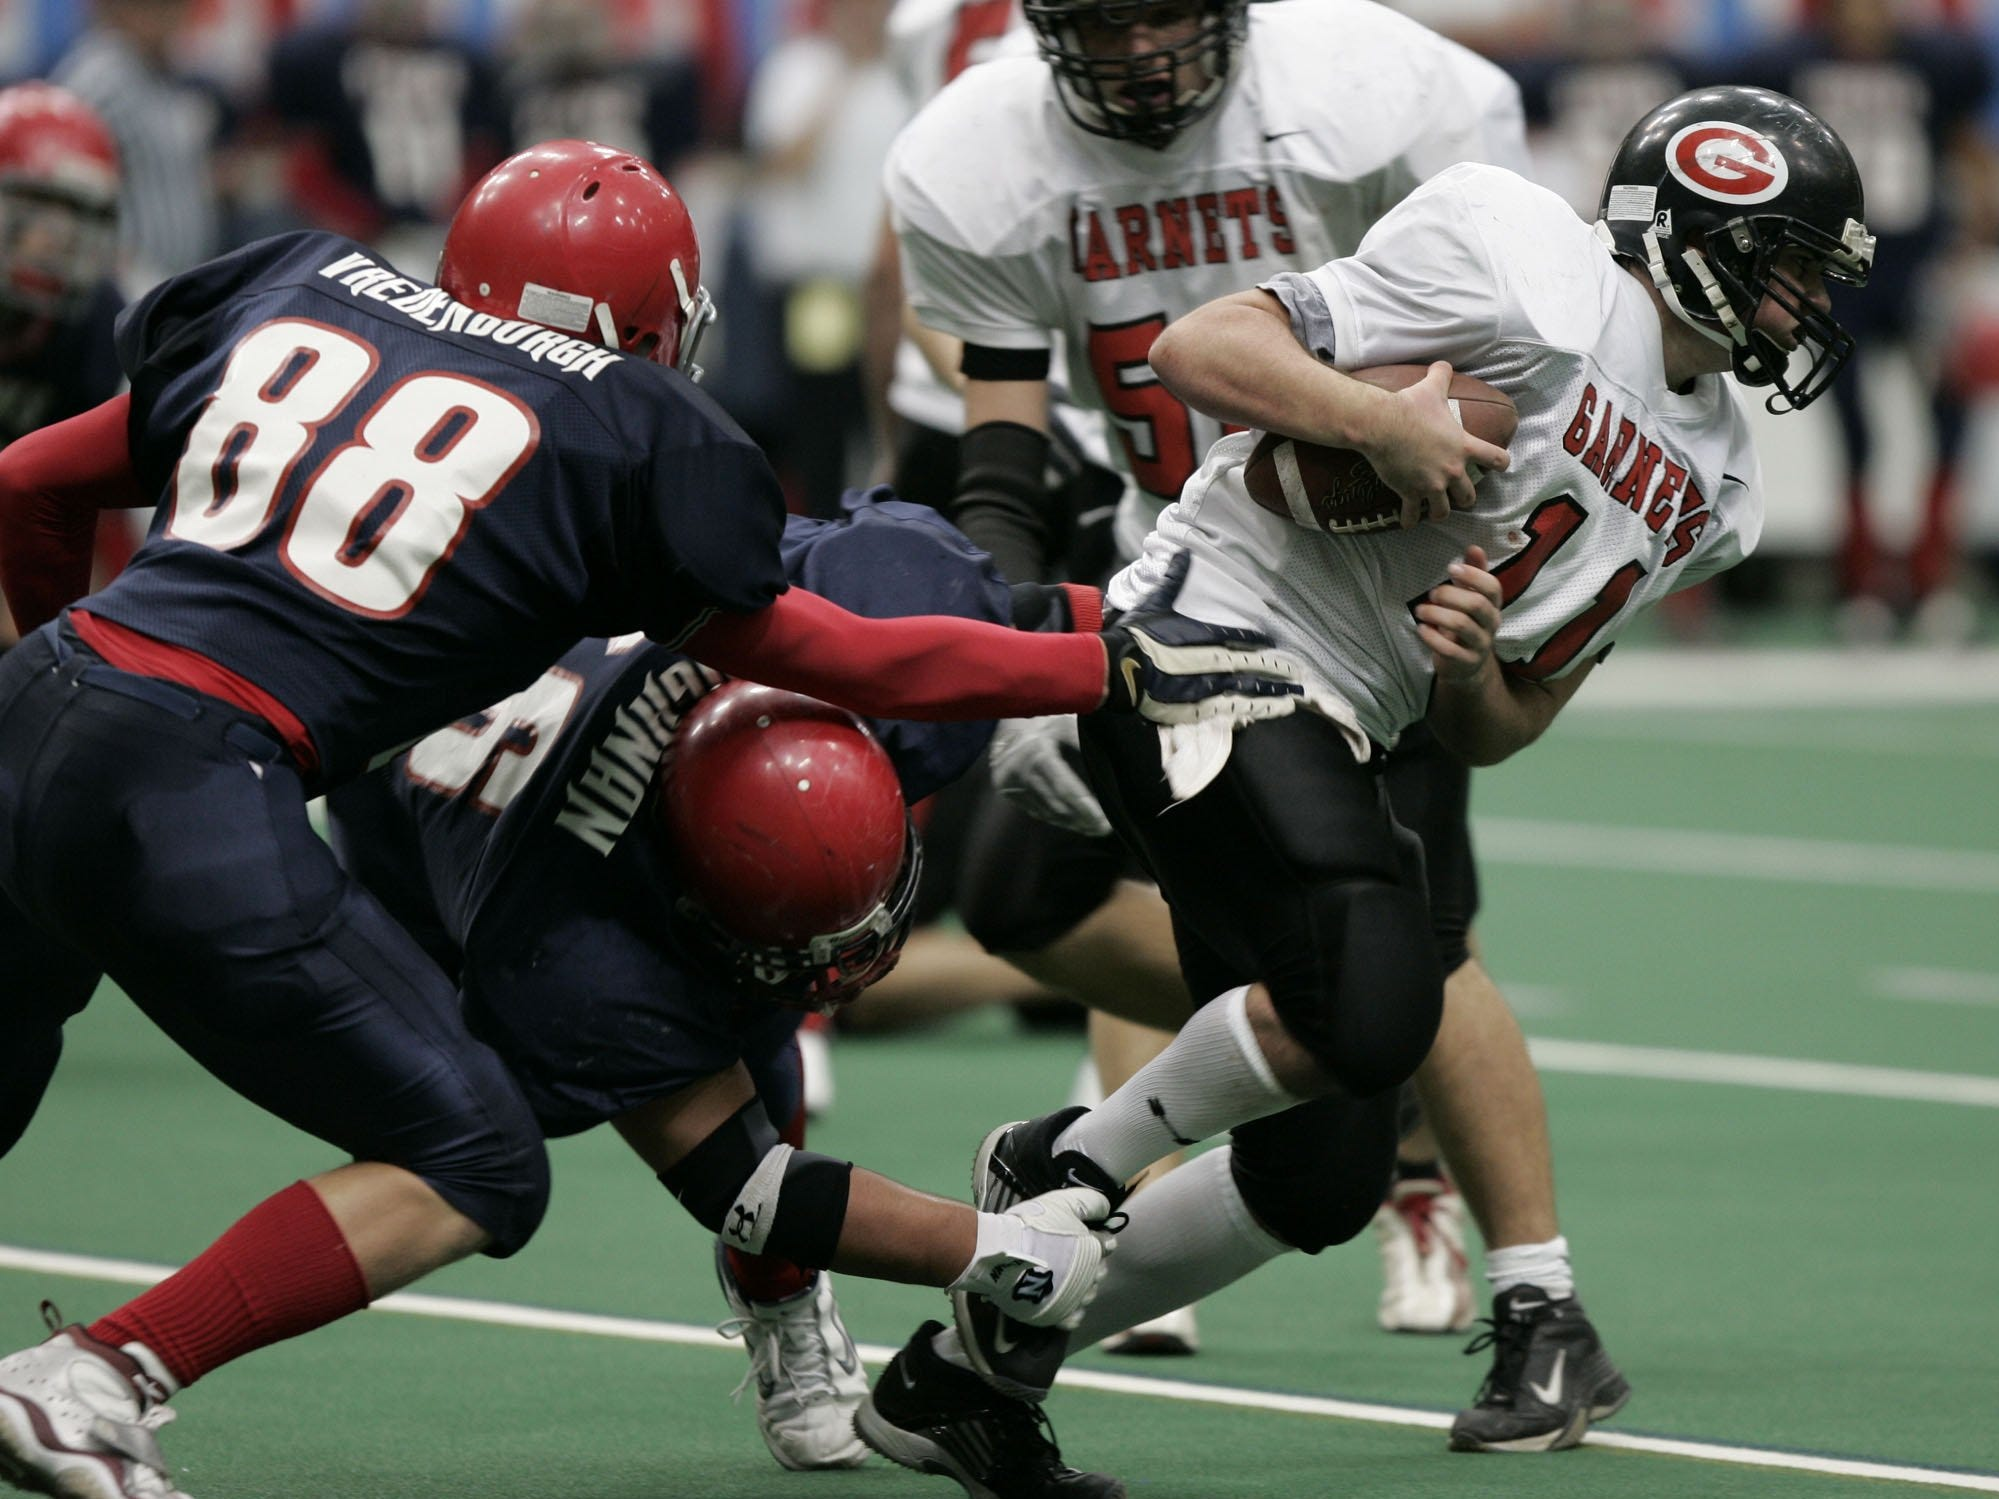 Rye's Jack Donnelly (11) is sacked by Chenango Forks' Matt Faughnan (76) during the Class B State Final at the Carrier Dome in Syracuse, N.Y. Nov. 26, 2004. Chenango Forks won, 48-0.